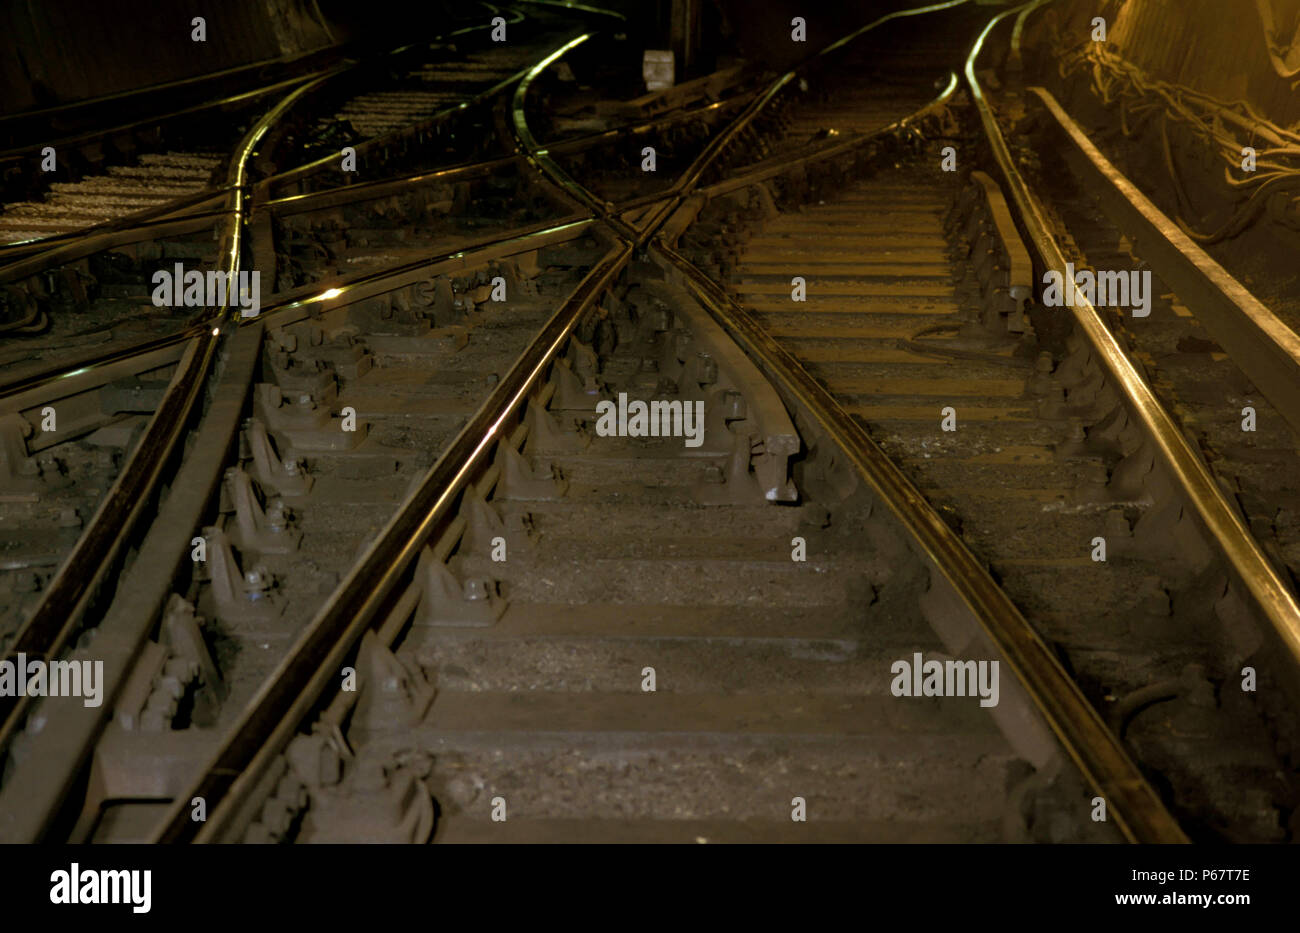 Railway tracks in London Underground tunnel. C 1993. - Stock Image